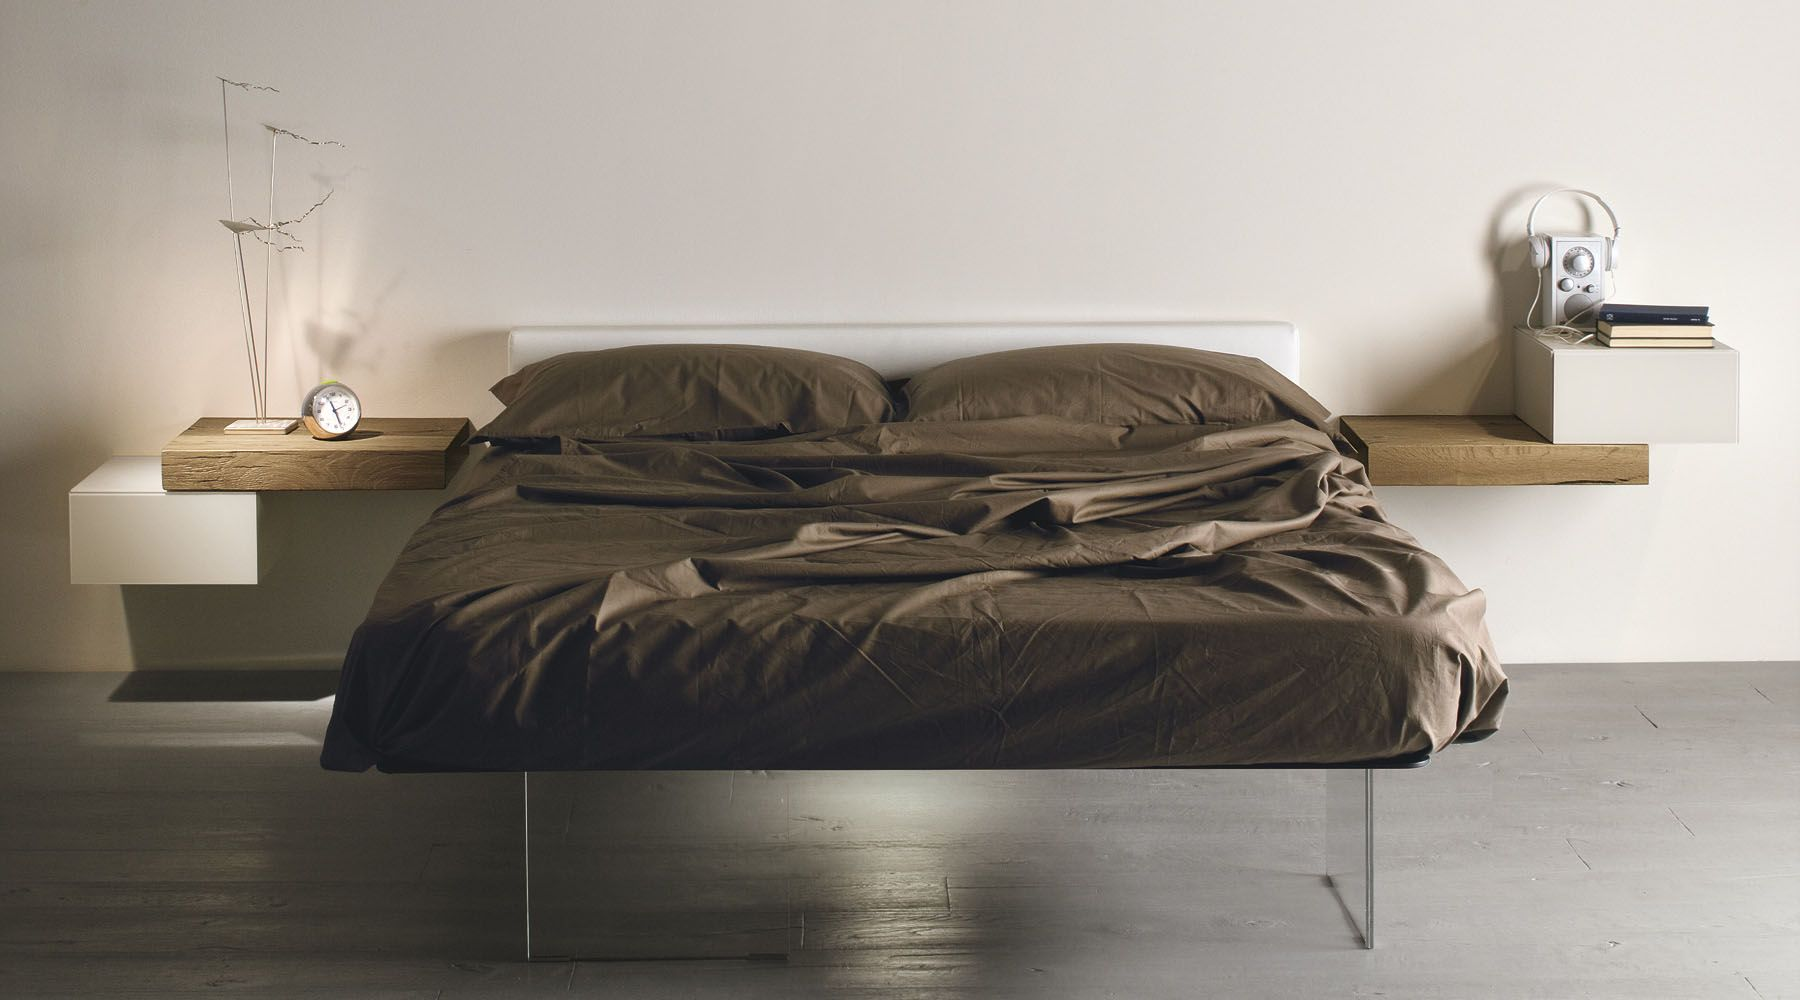 Prodotti Archive - Lago | House - Bedroom | Pinterest | Bed design ...